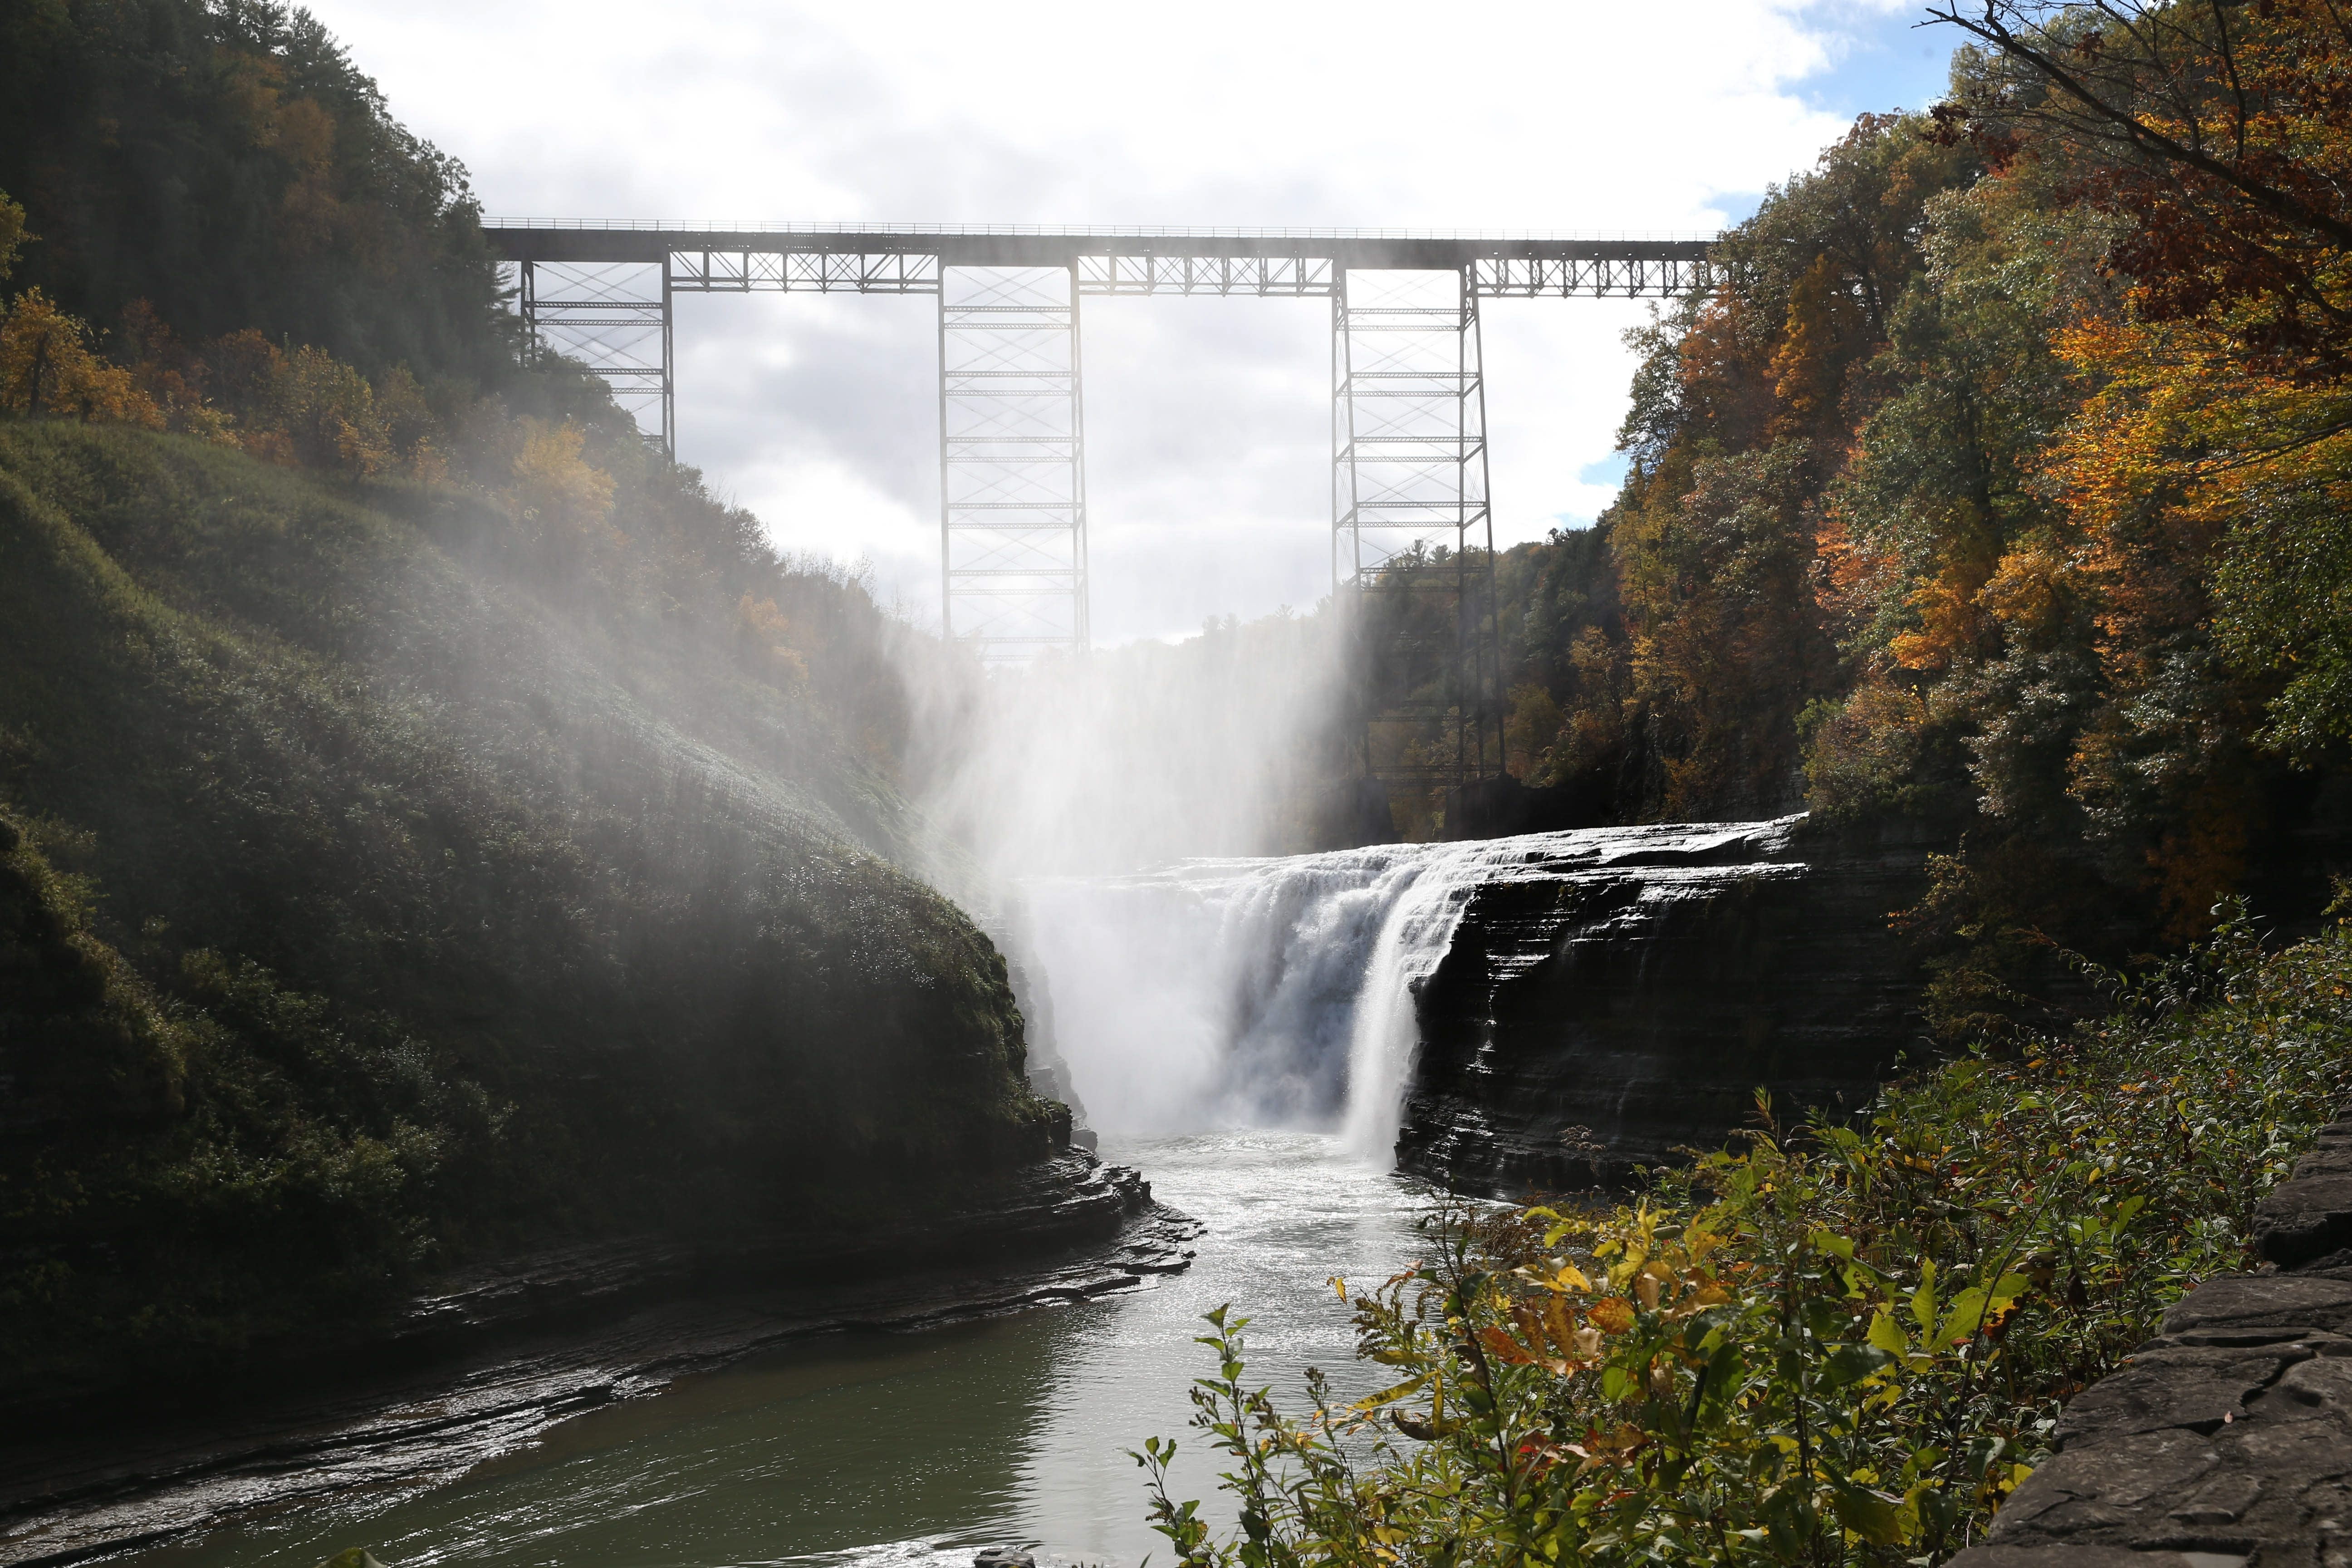 Letchworth State Park, sometimes called the Grand Canyon of the East draws a multitude of visitors annually who come to see the three waterfalls,  the steep walls of the canyon with the Genesee River winding through.  The most popular time of year is in October when tourists come to see the magnificence of the changing leaves in this majestic setting.  Photo taken, Wednesday, Oct. 14, 2015. This is the upper falls. (Sharon Cantillon/Buffalo News)